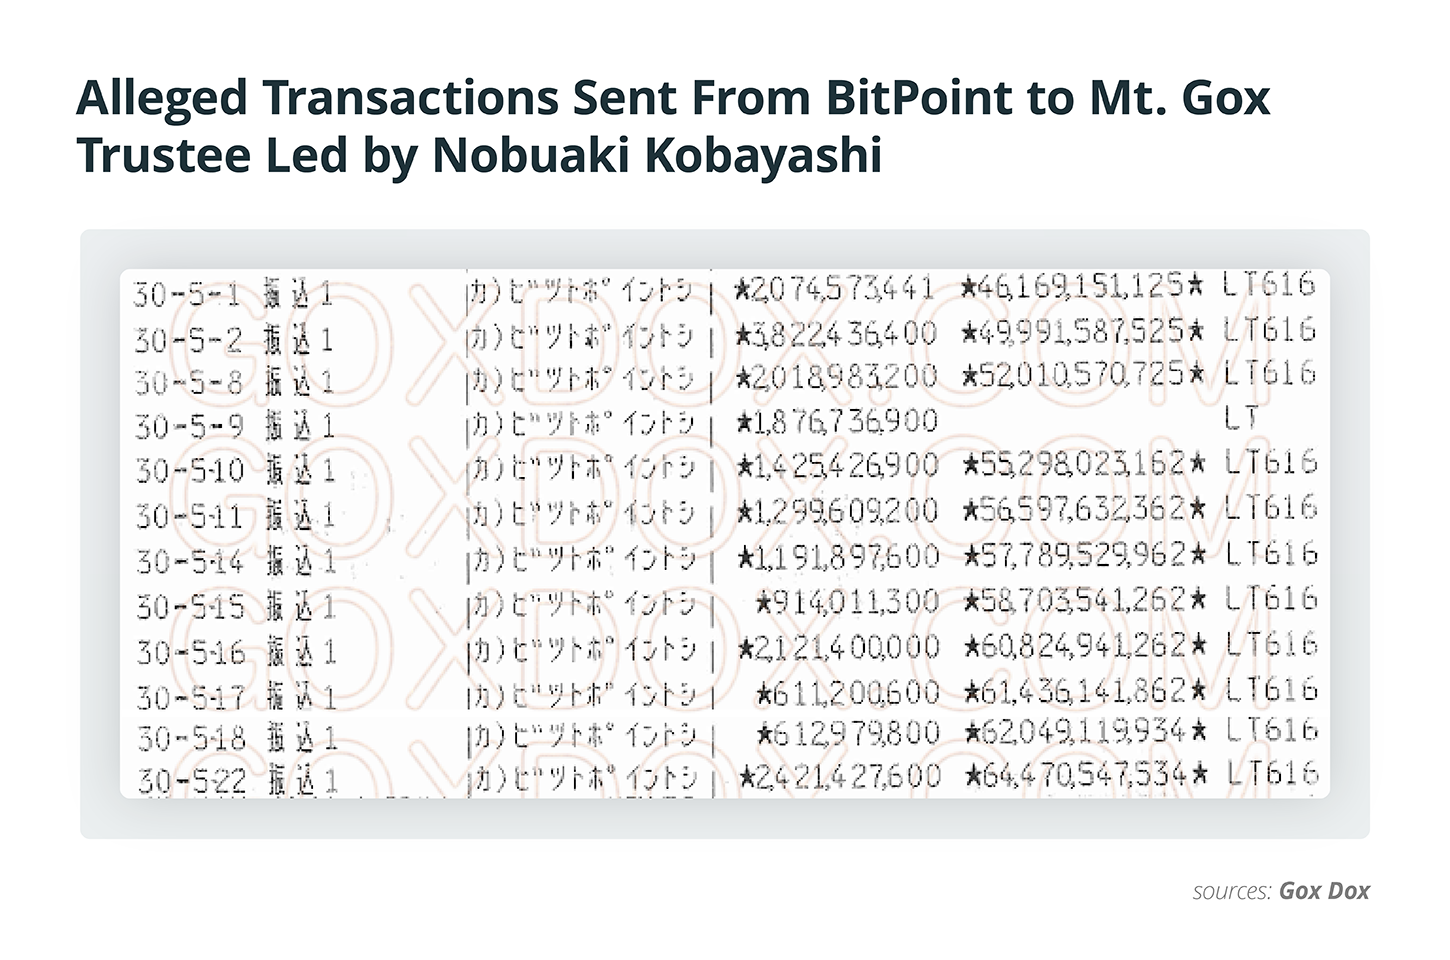 Alleged Transactions Sent From BitPoint to Mt. Gox Trustee Led by Nobuaki Kobayashi